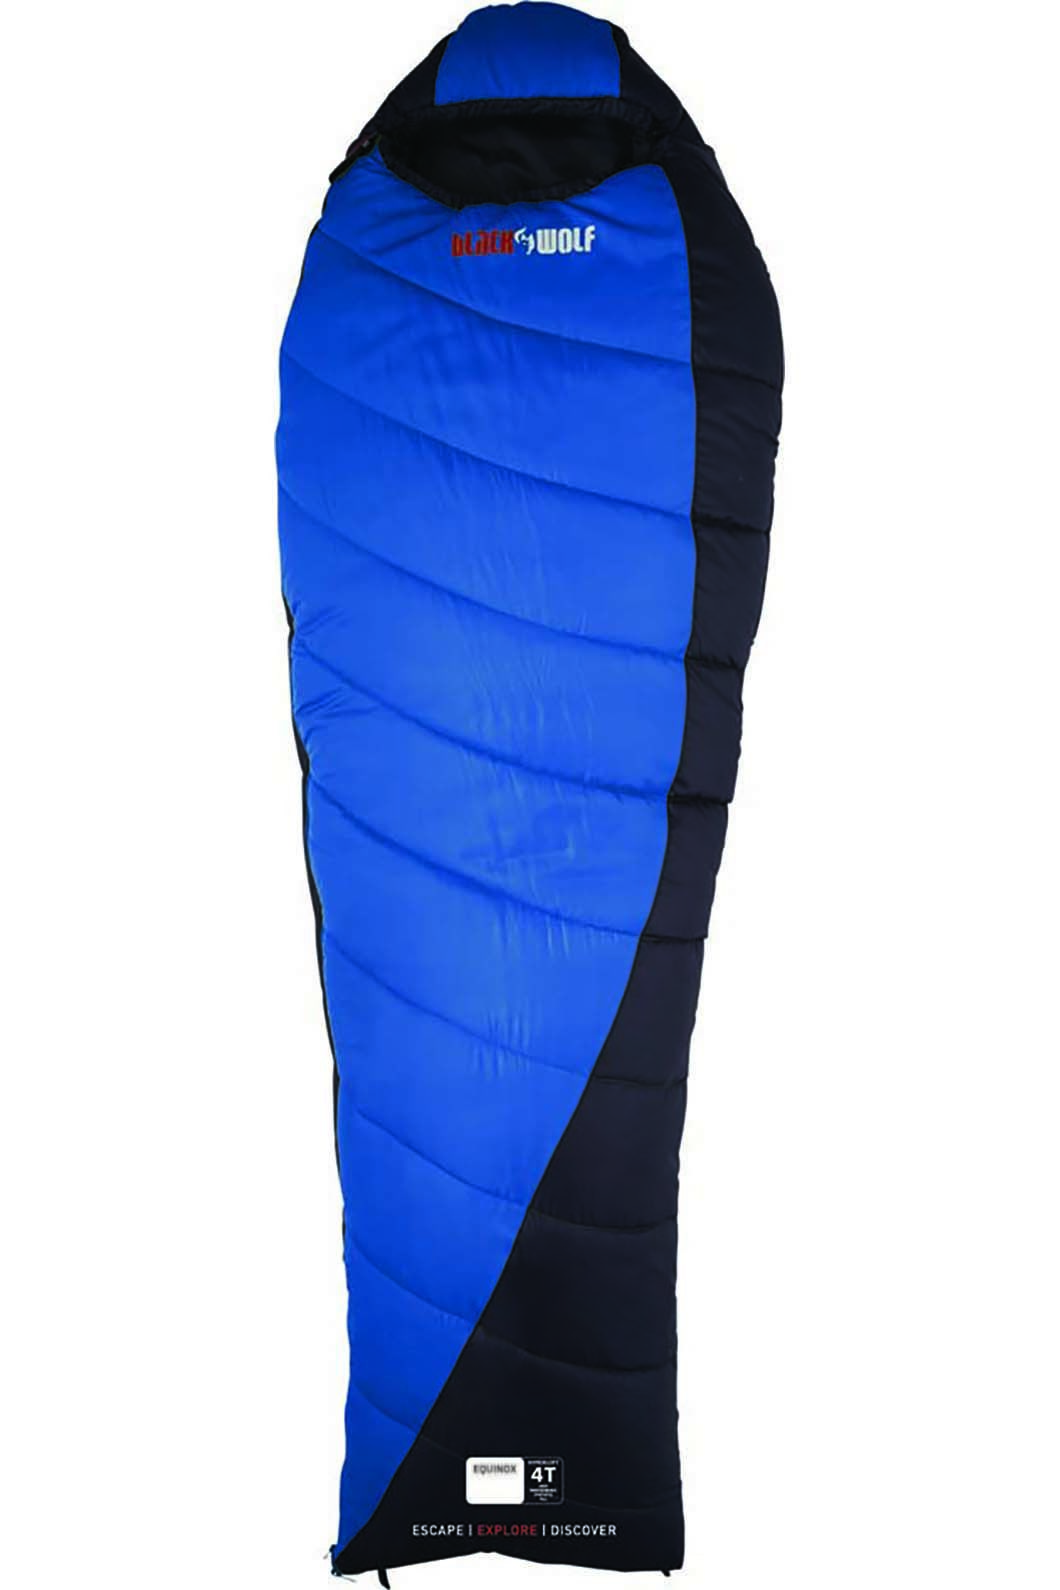 BlackWolf Equinox 220 Sleeping Bag, None, hi-res